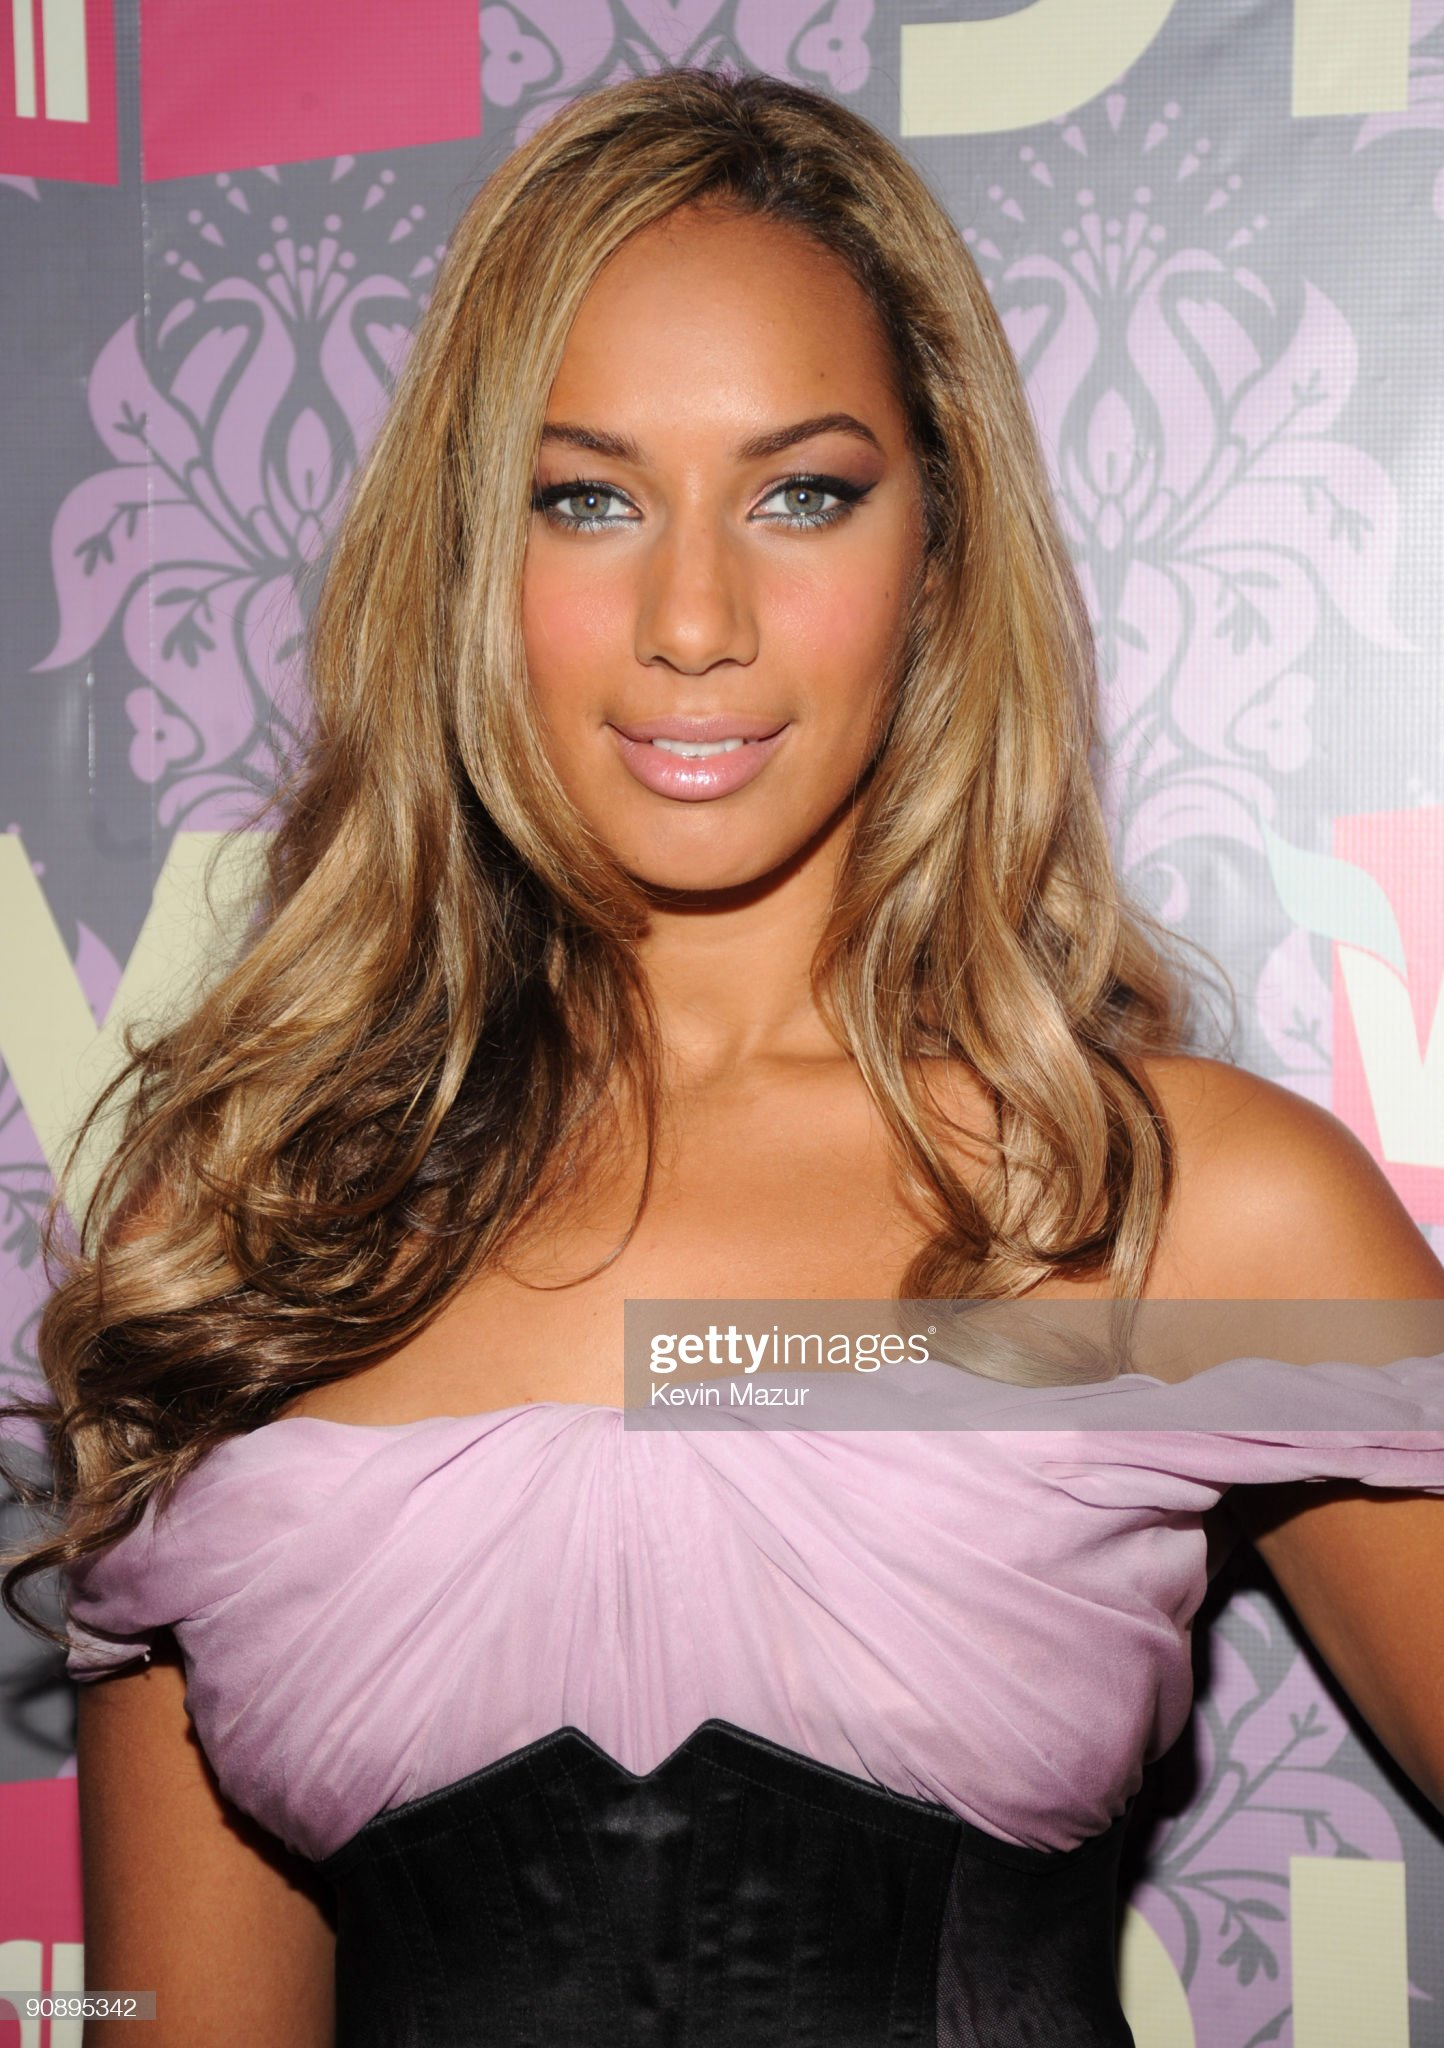 Ojos azules - personas famosas con los ojos de color AZUL Leona-lewis-attends-2009-vh1-divas-at-brooklyn-academy-of-music-on-picture-id90895342?s=2048x2048